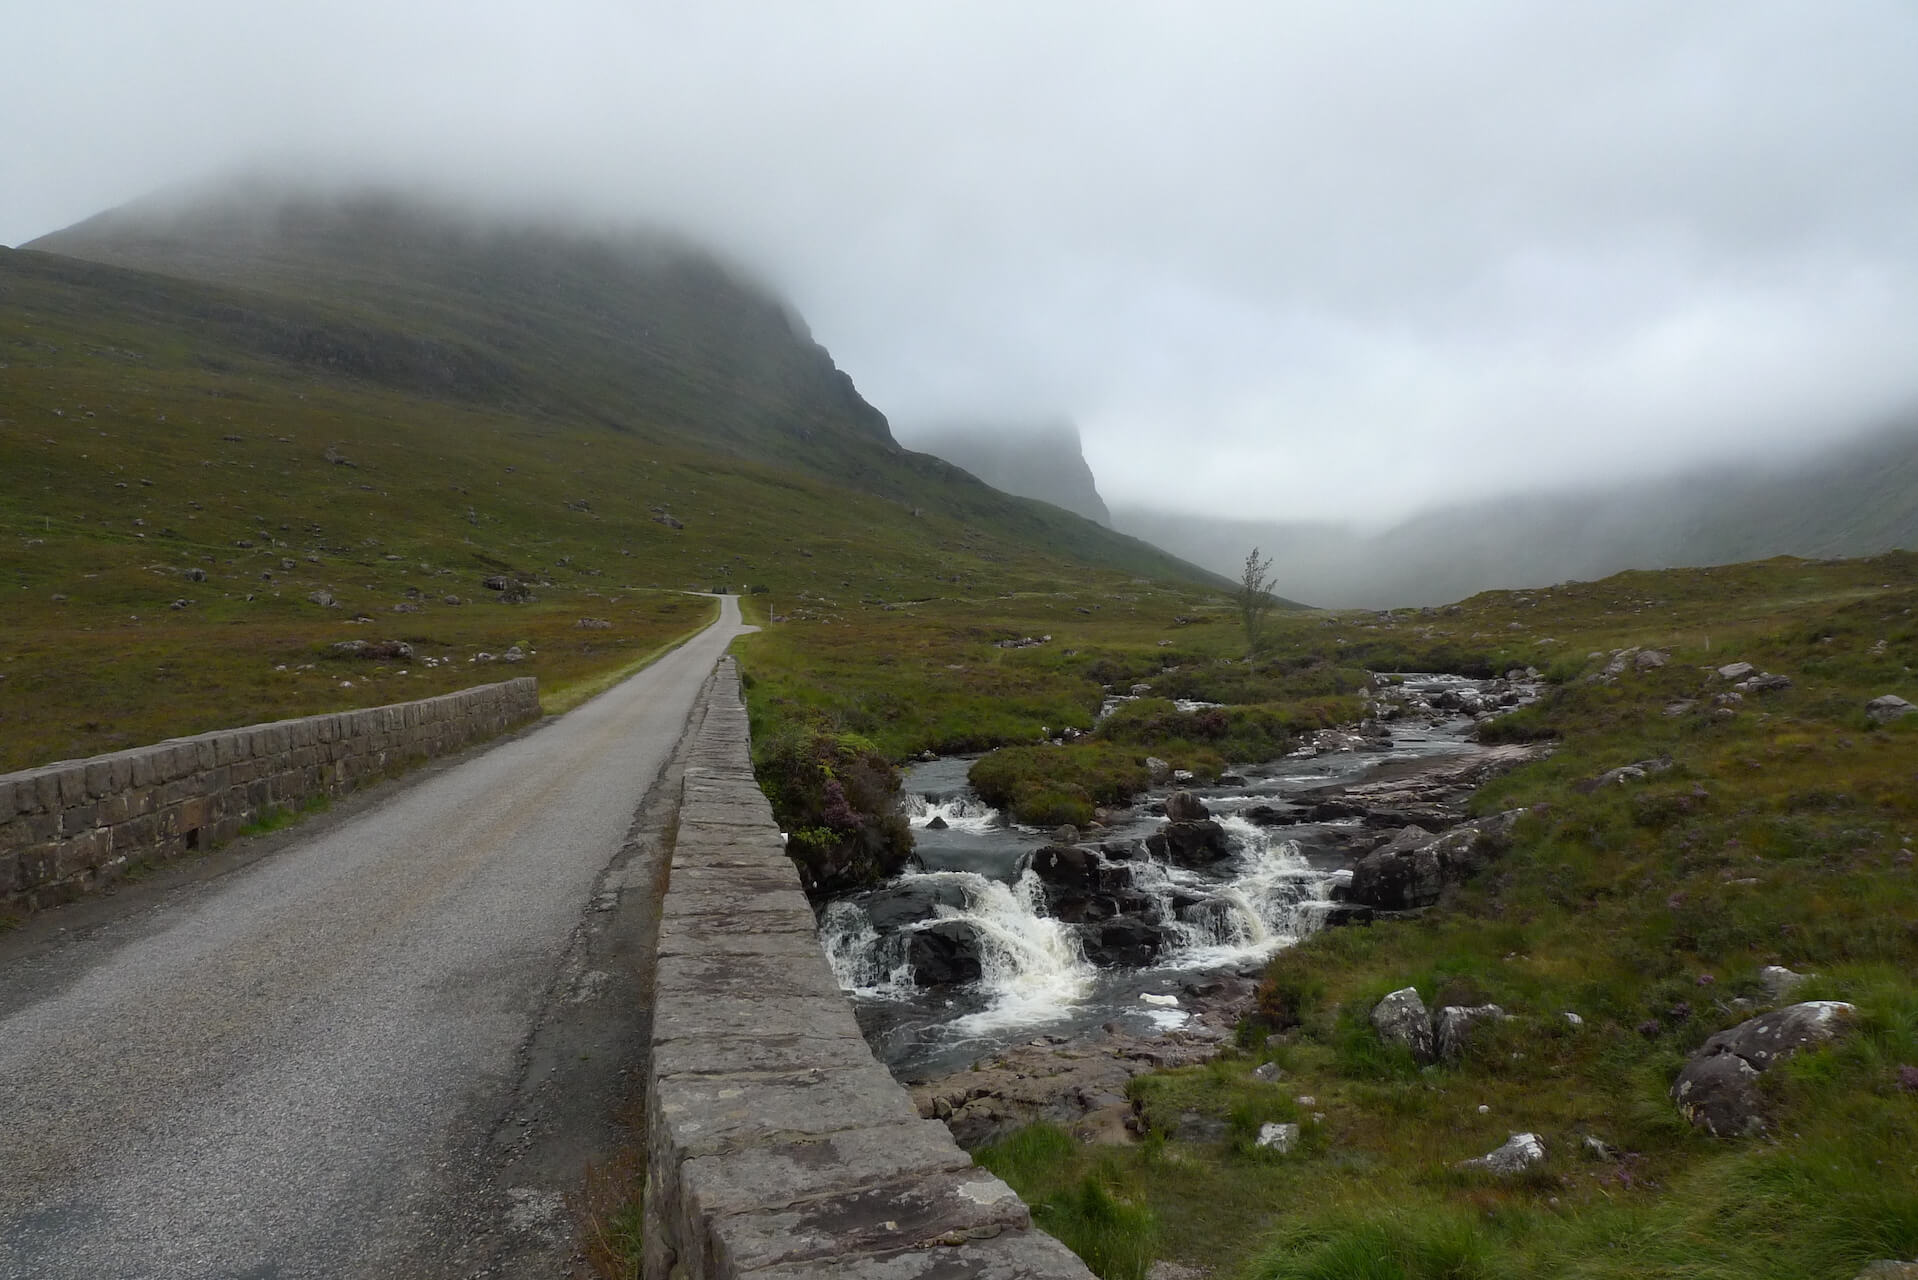 Mist in the hills as seen from the foot of the Bealach na Bá